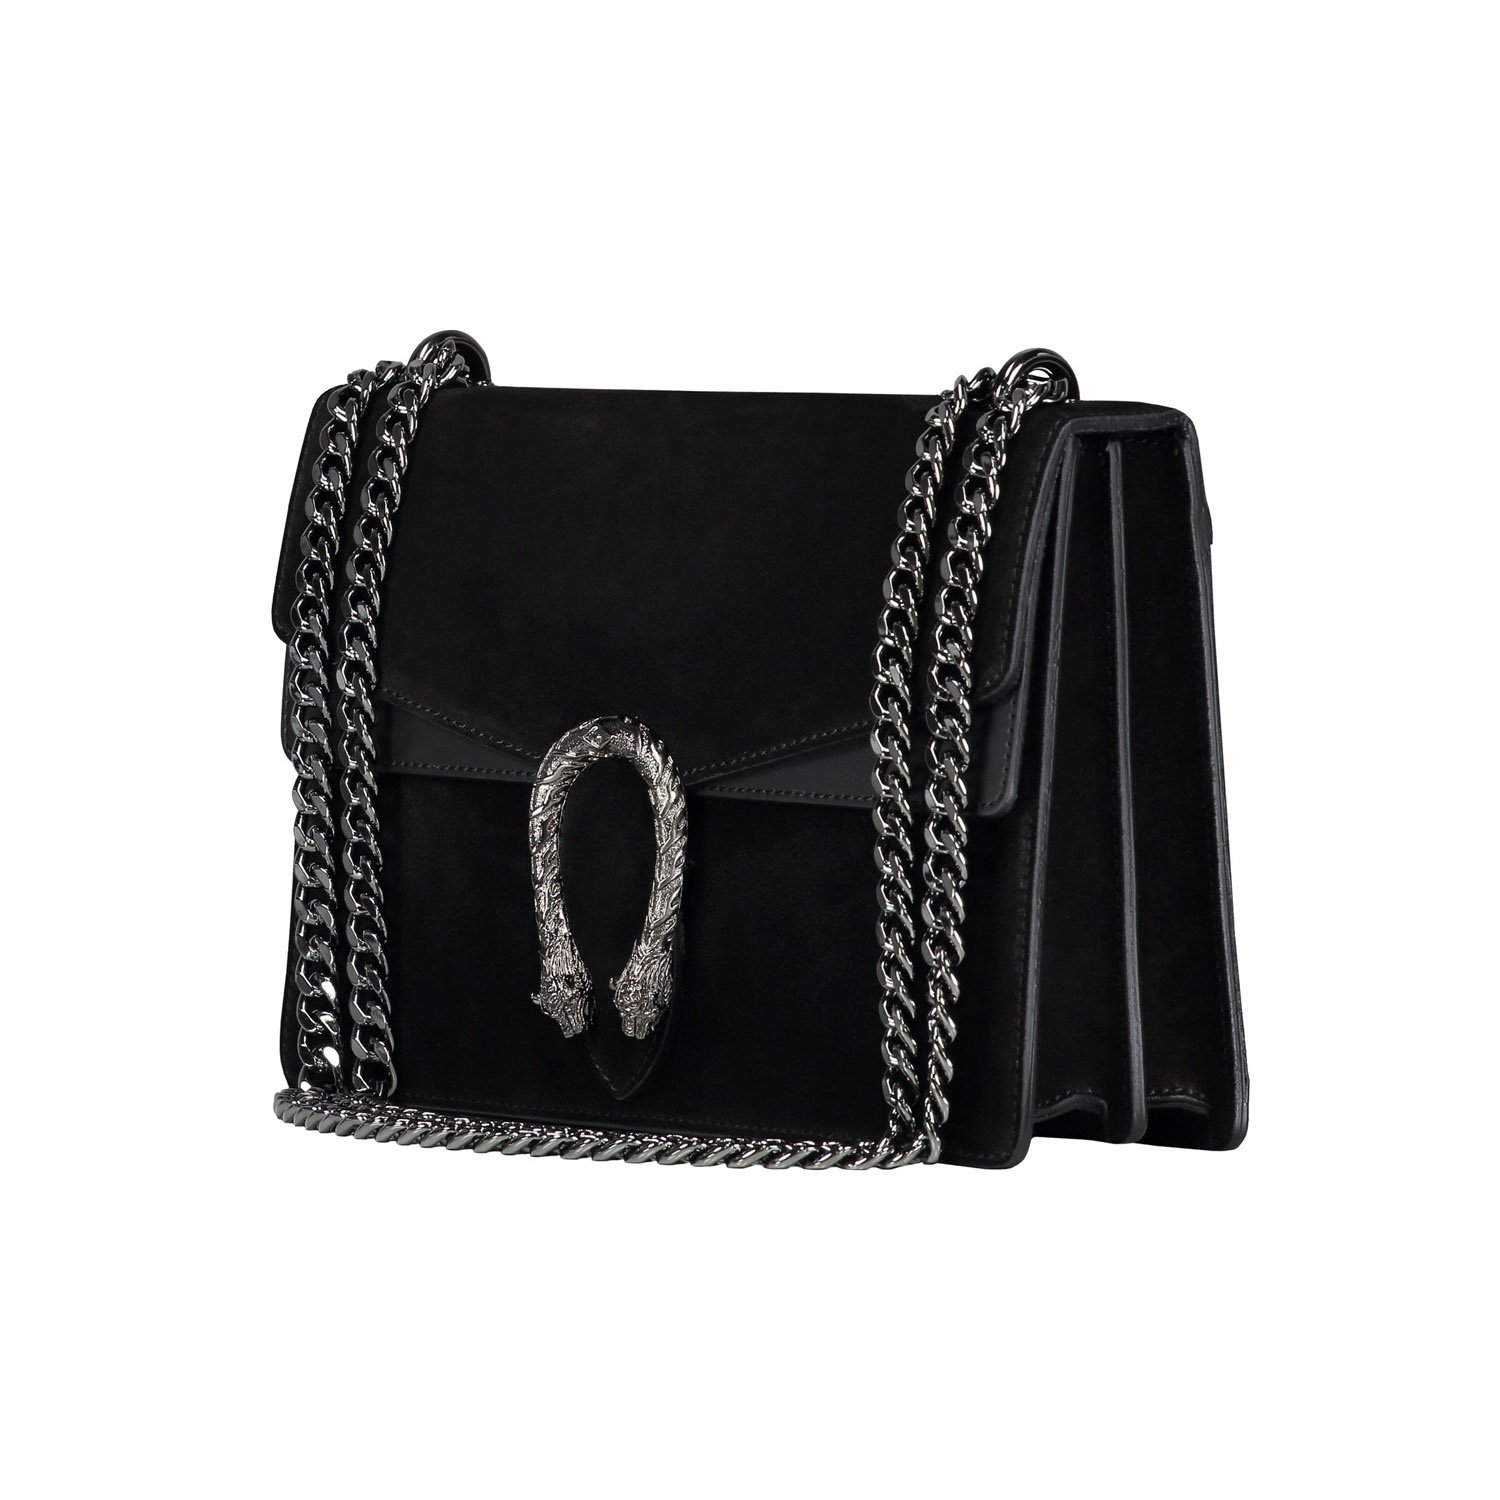 ad0023b71a52 RACHEL Italian Baugette clutch mini wallet cross body bag with nickel chain  smooth stiff leather and suede (black): Handbags: Amazon.com